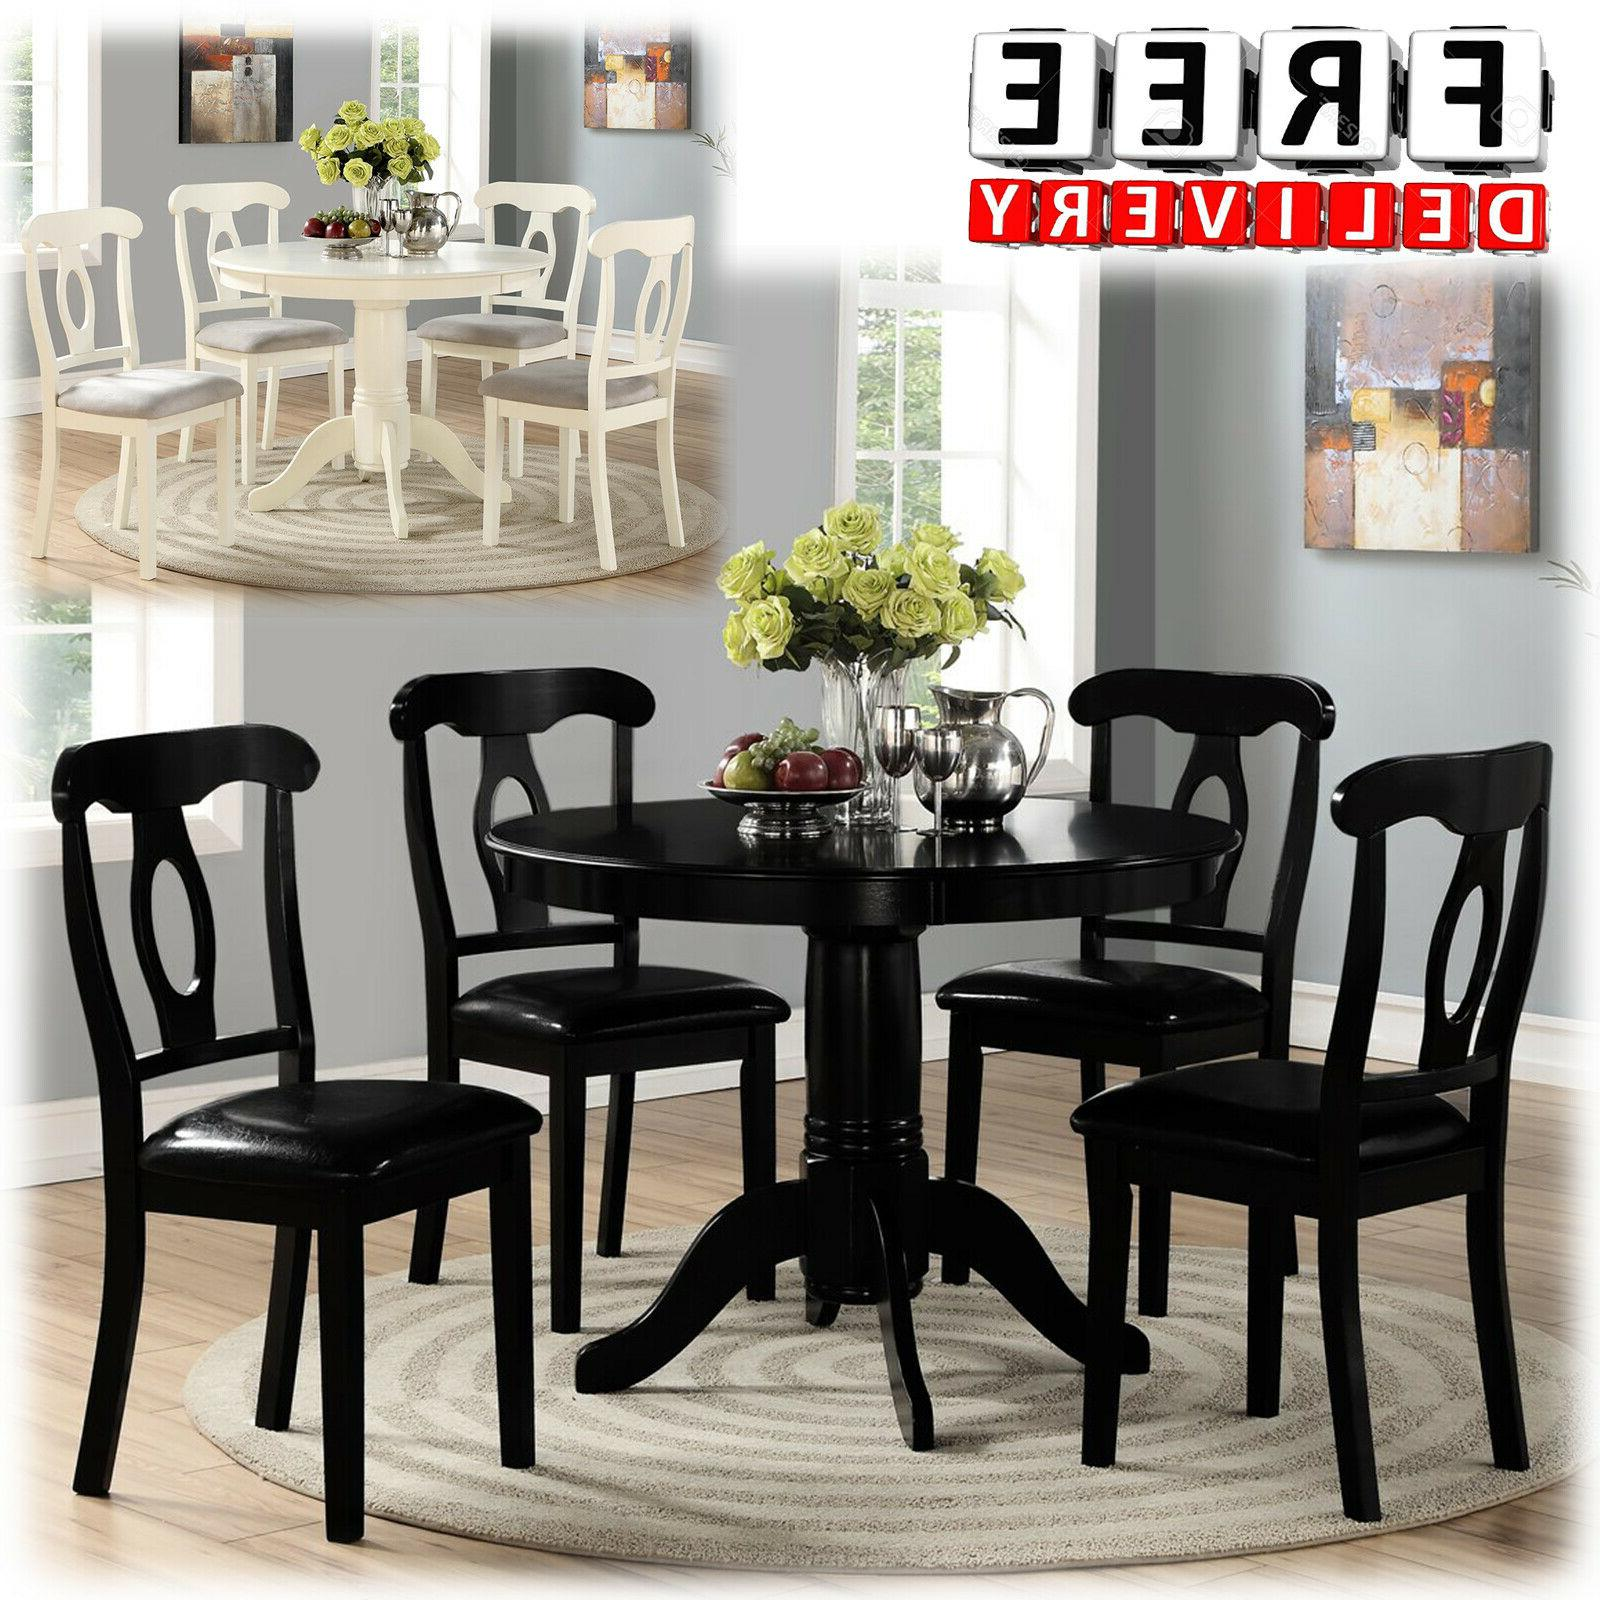 Dining Table And Chairs Room 5 Piece Wood Modern Contemporar